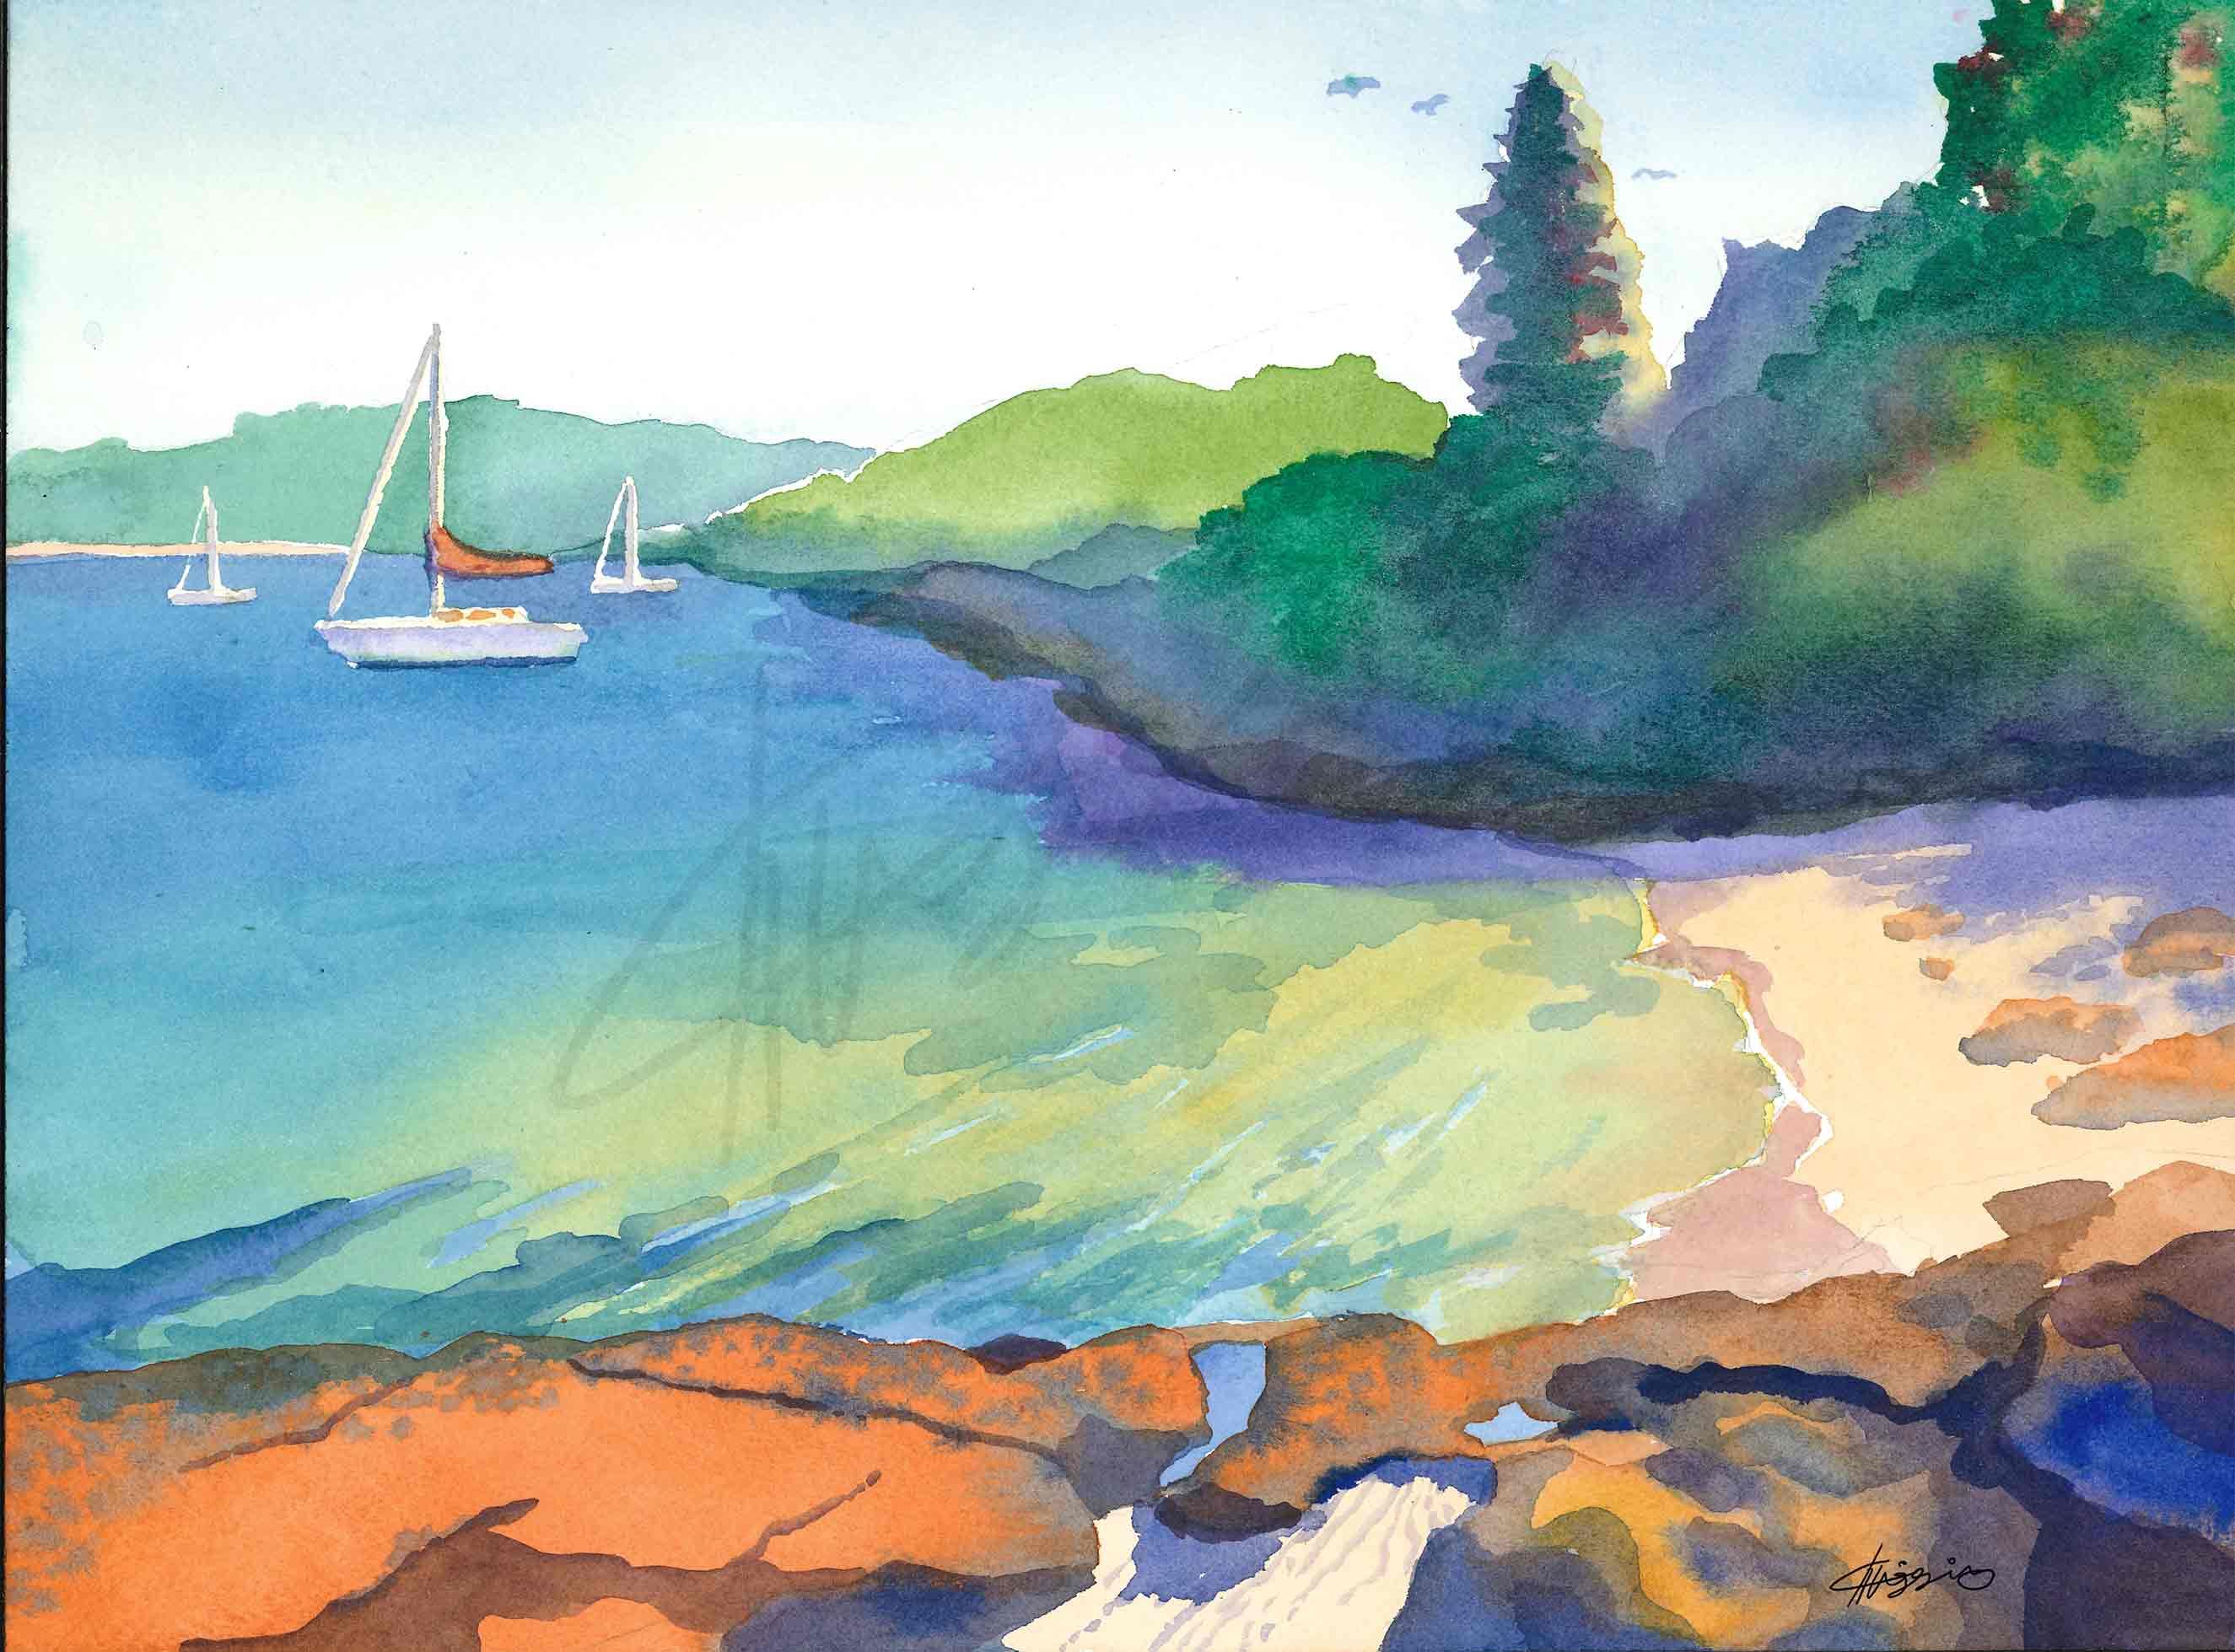 Watercolor painting of a beach and moored boats